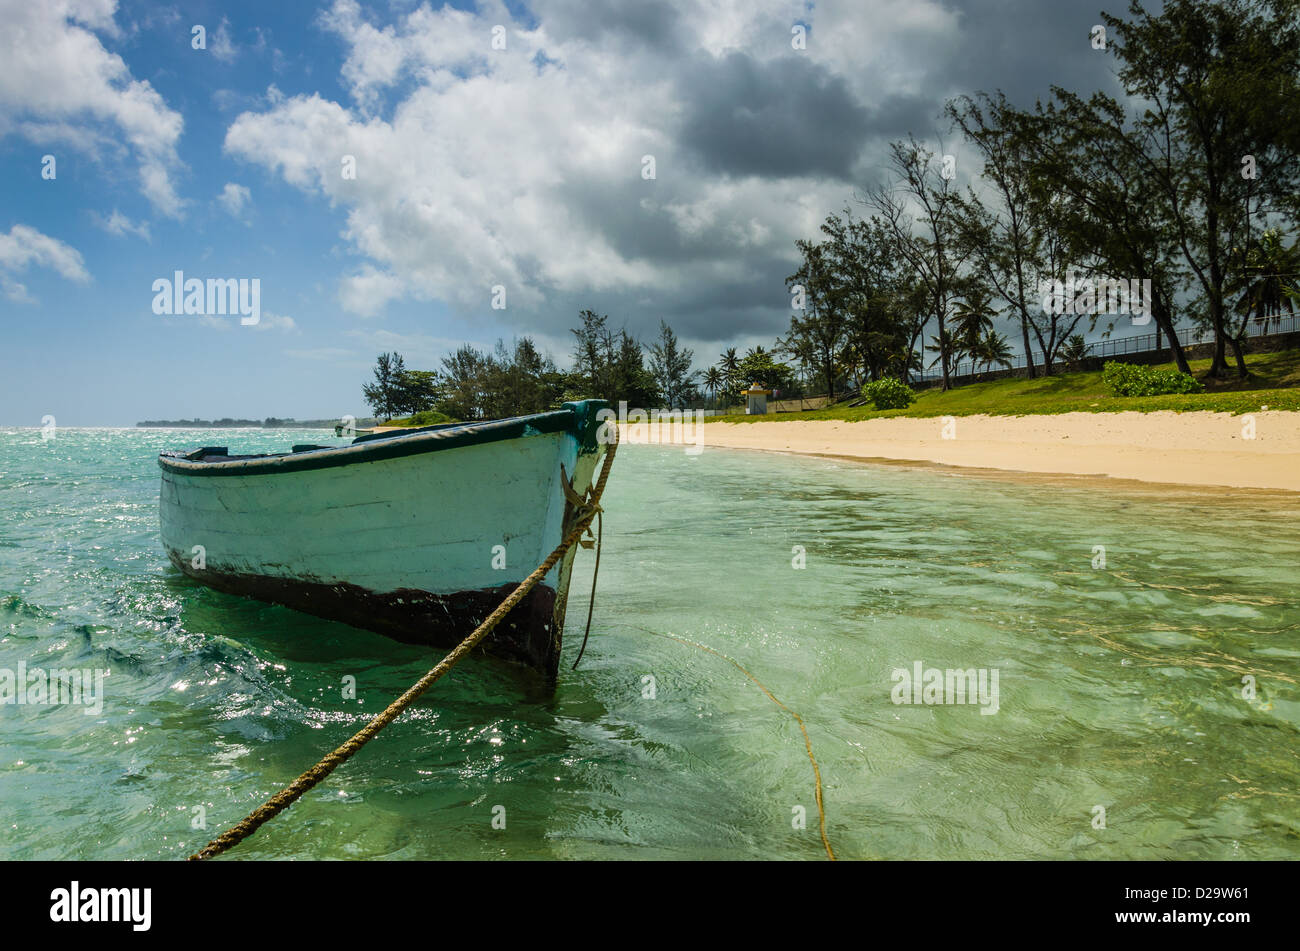 Boat in the lagoon at Bel Ombre 3 - Stock Image